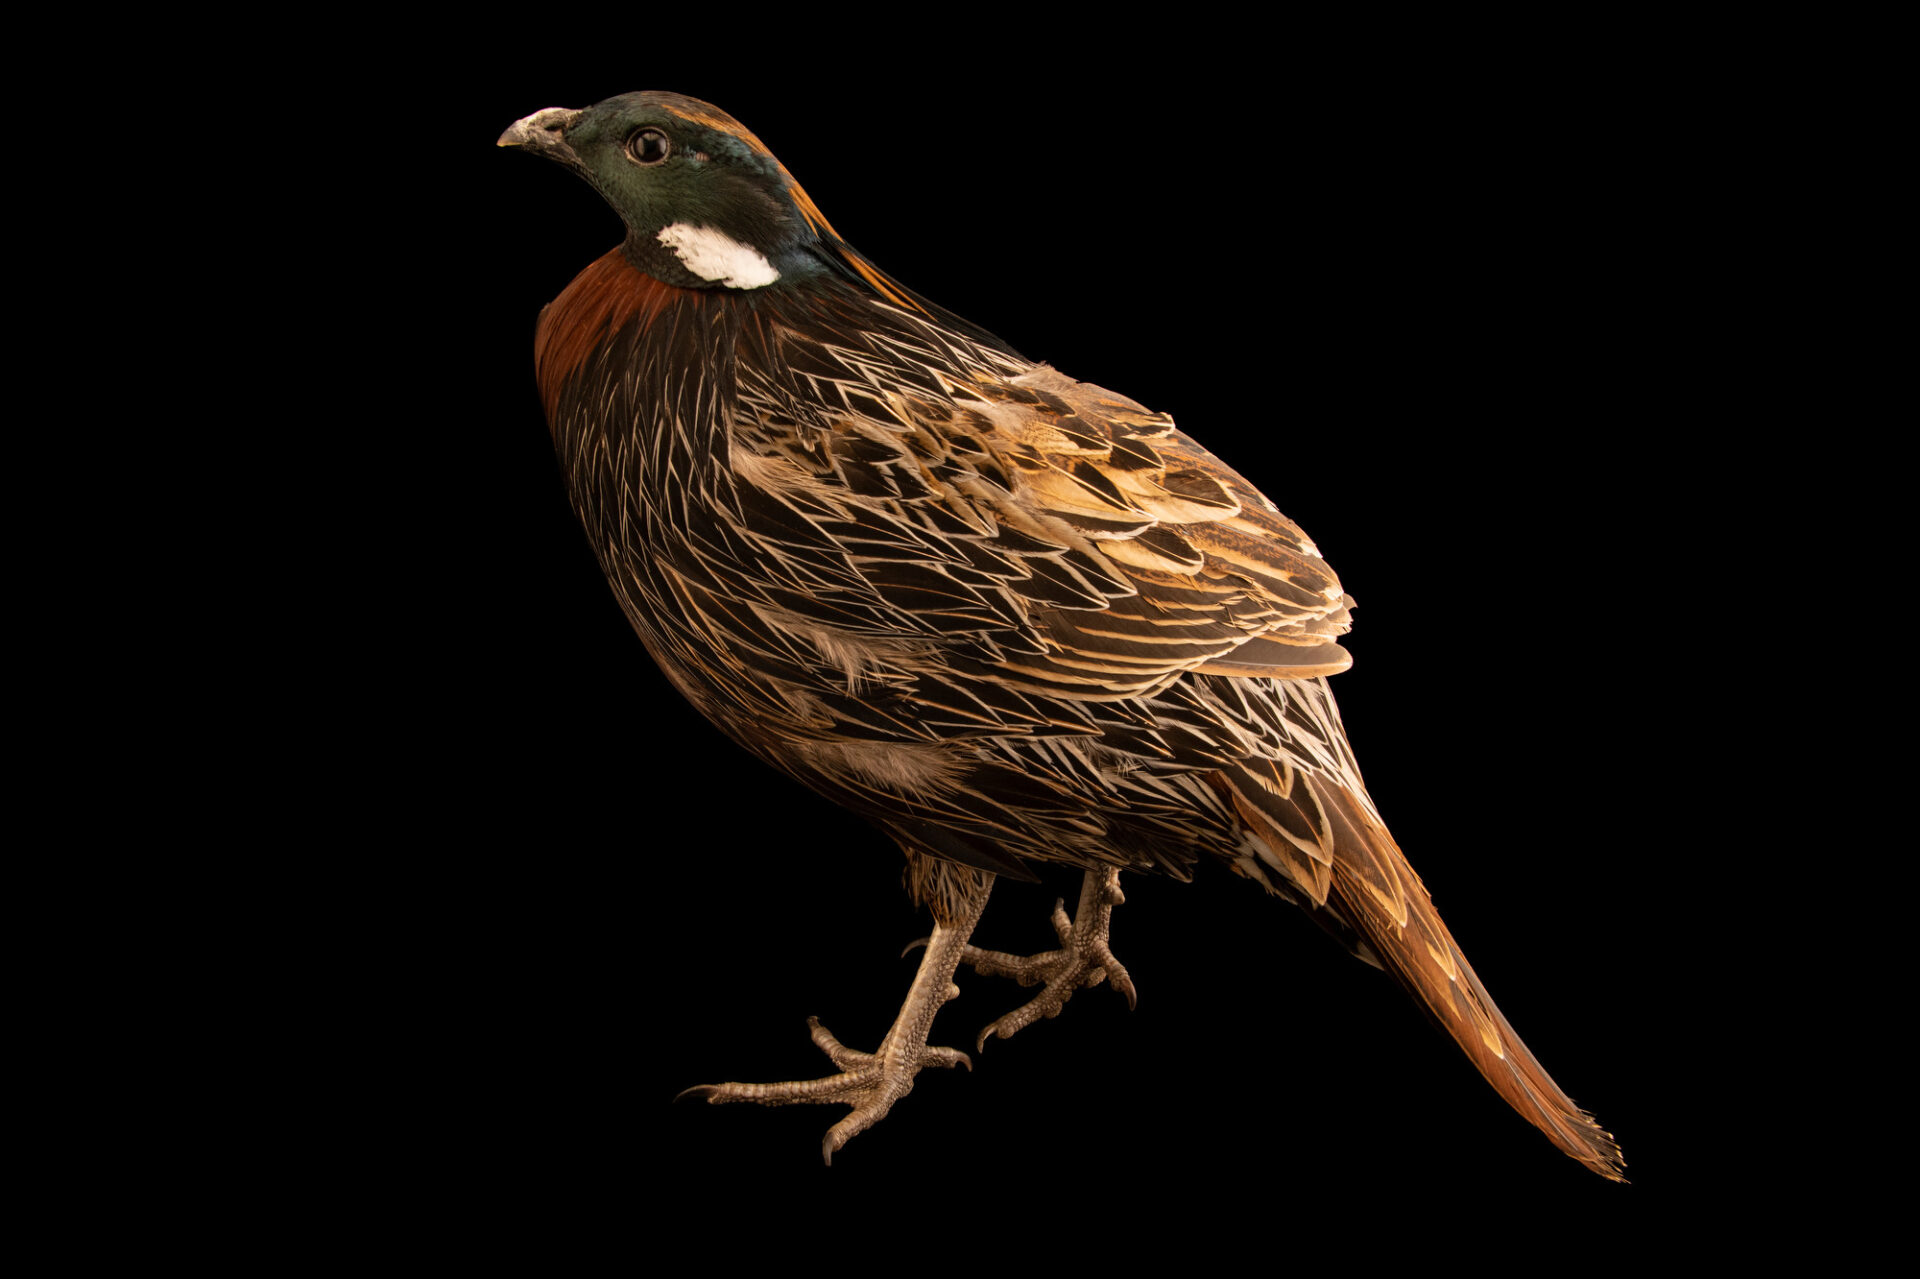 Photo: A male Kashmir koklass pheasant (Pucrasia macrolopha biddulphi) from a private collection.